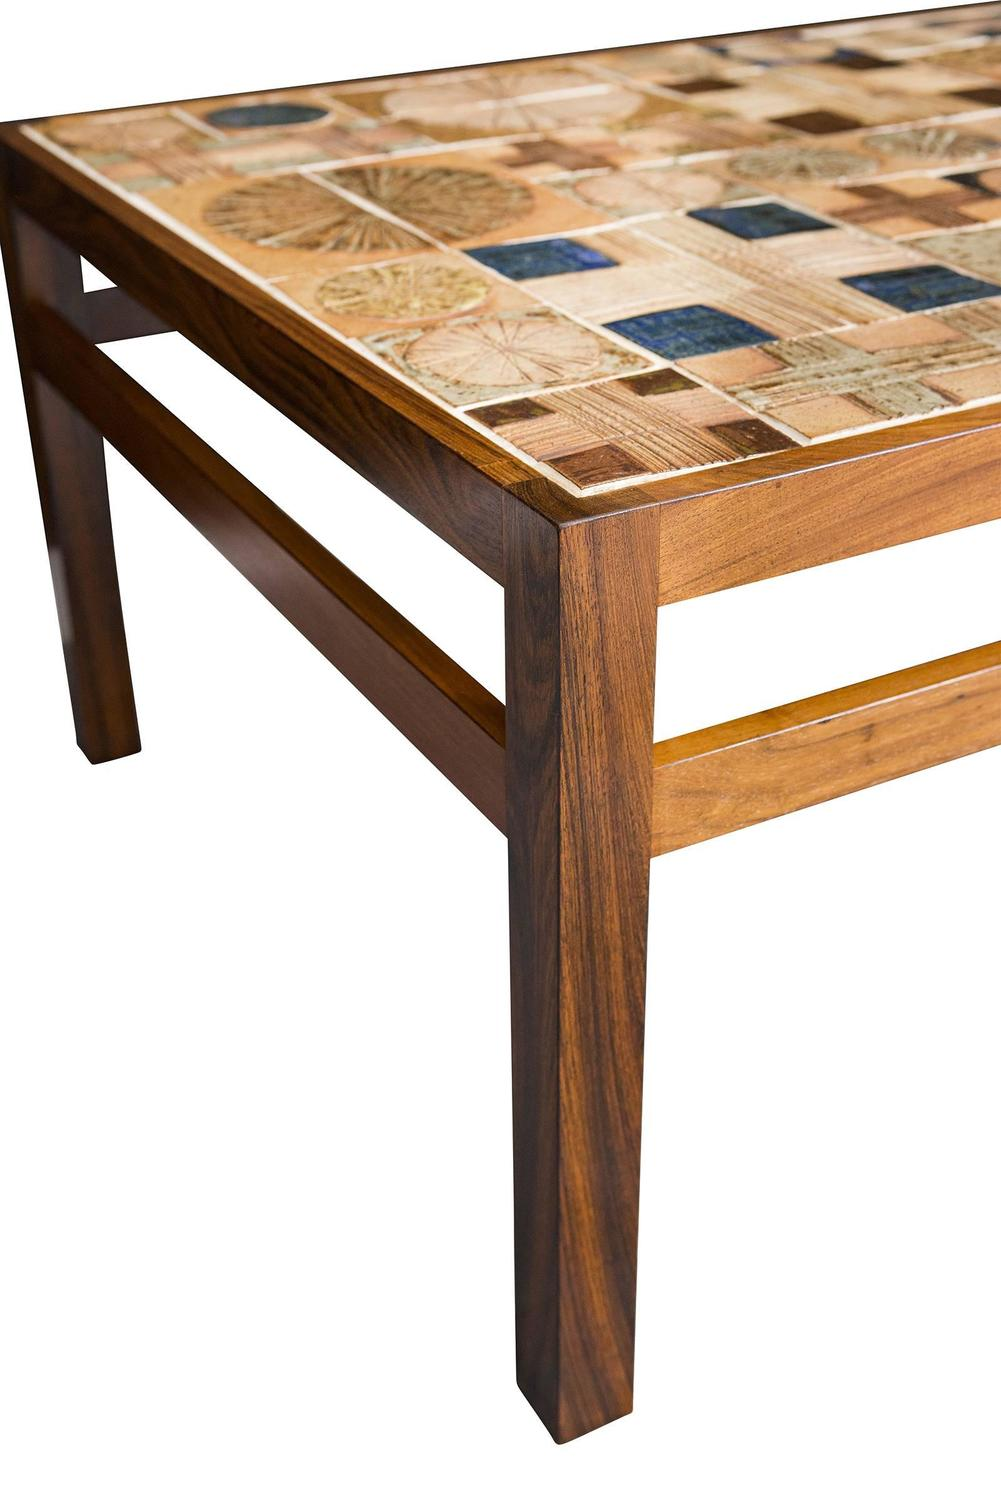 Tile coffee table for Tile top coffee table